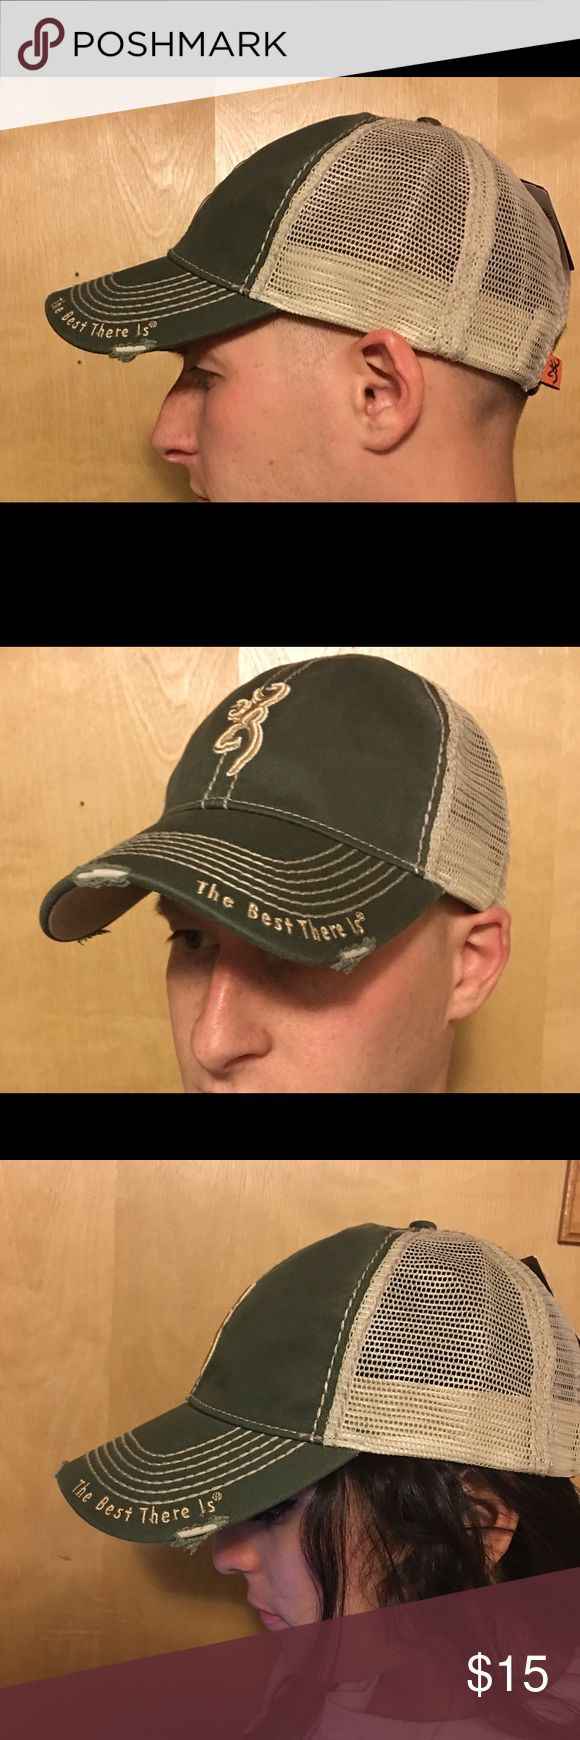 Browning hat. Unisex. Brand new with tags! This hat is brand new never worn with tags. Browning hunting hat for guy or girl. Perfect for your wife or girlfriend to wear when the guys come over so she can make them jealous. Or for you to wear. browning Accessories Hats